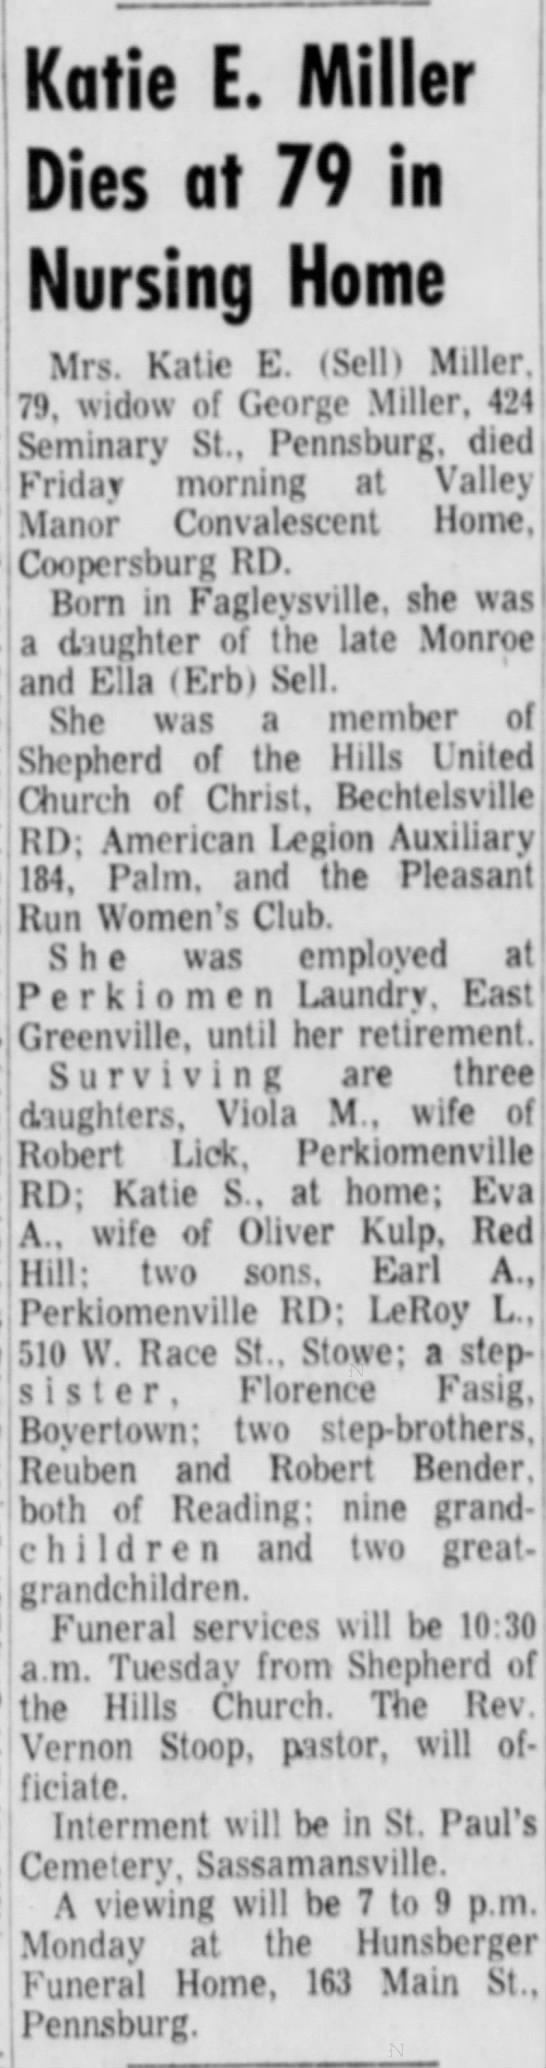 Katie Sell Miller - Katie E. Miller Dies at 79 in Nursing Home...